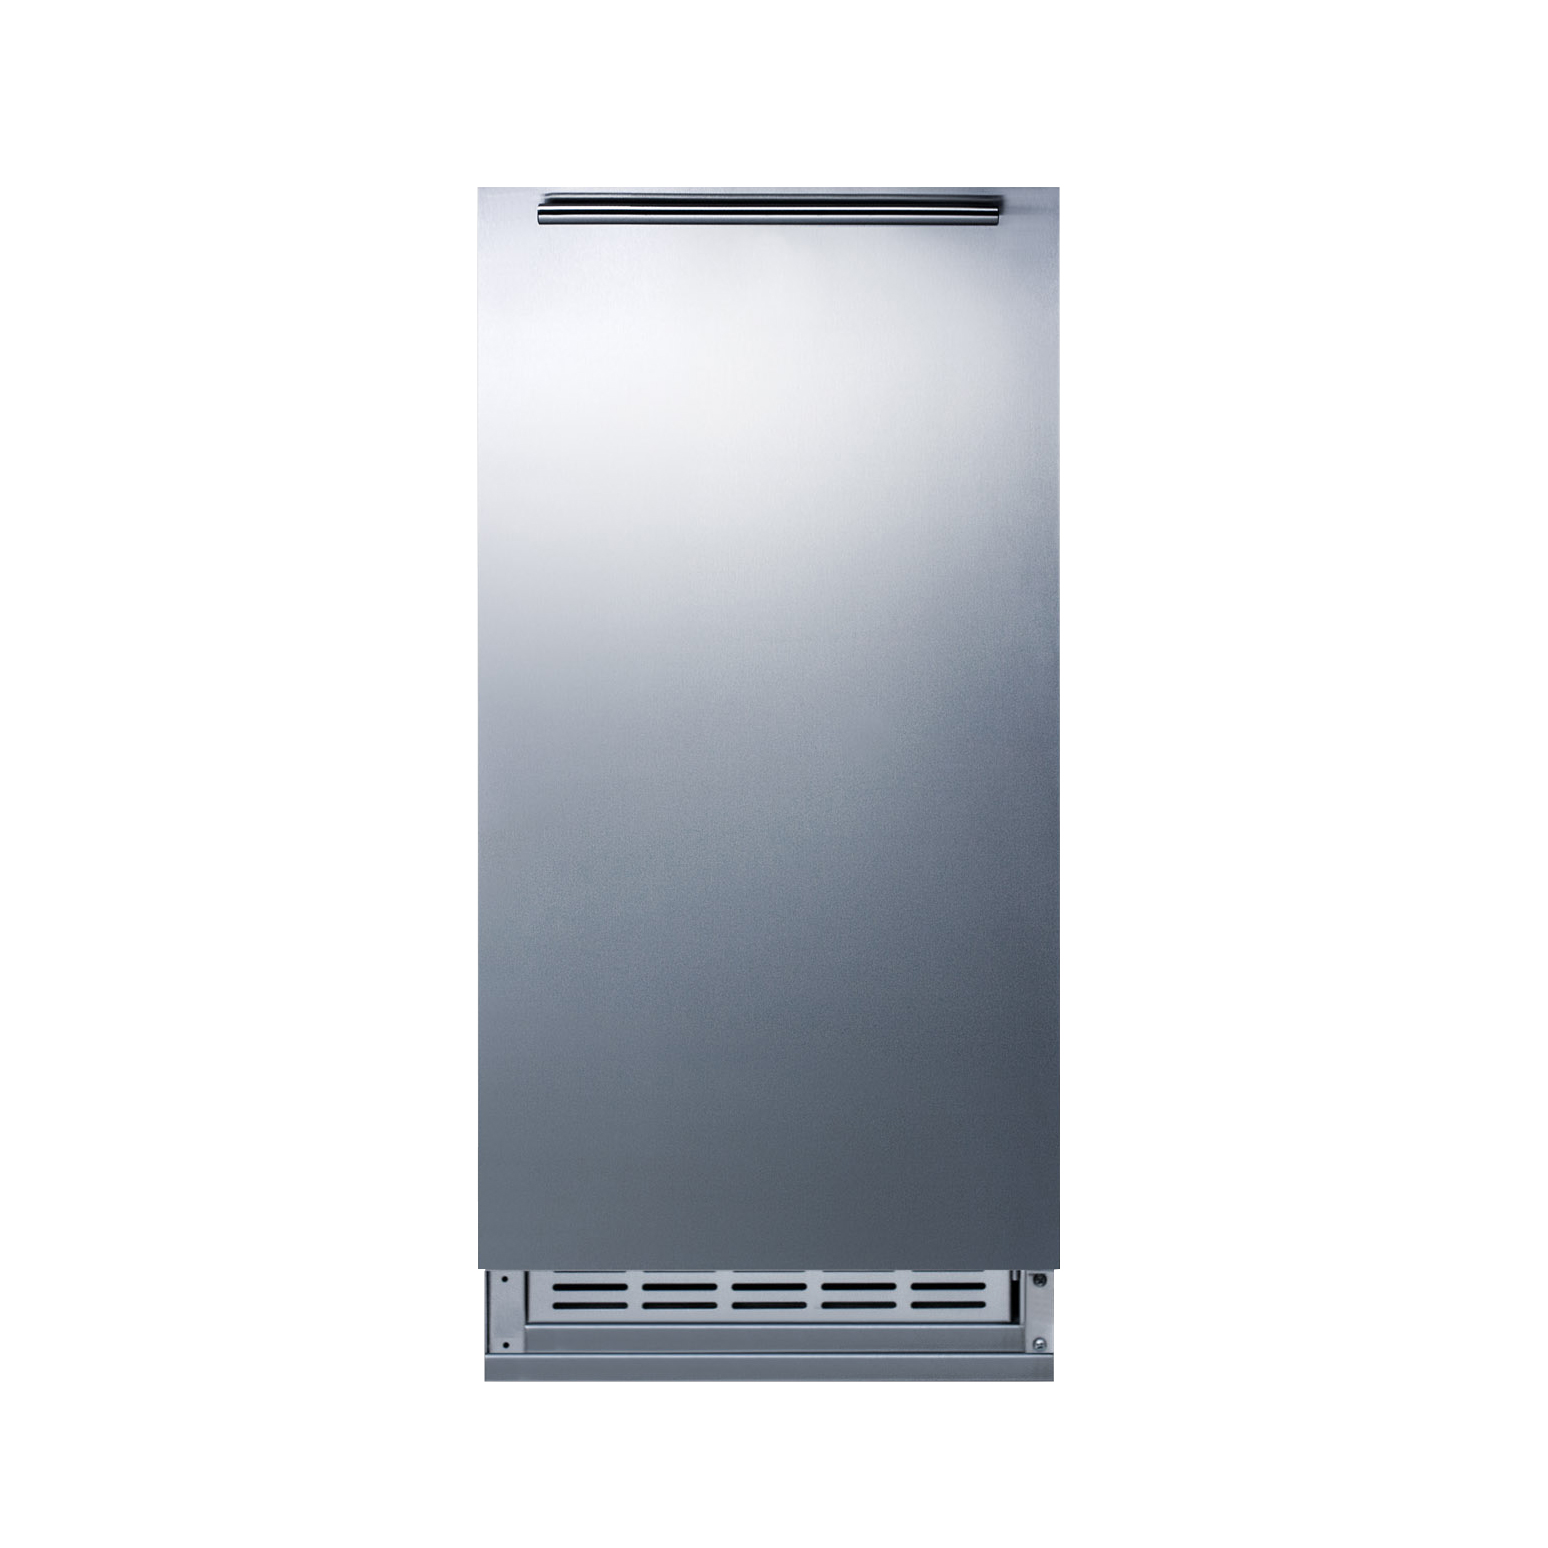 Summit Commercial BIM25H34 ice maker with bin, cube-style